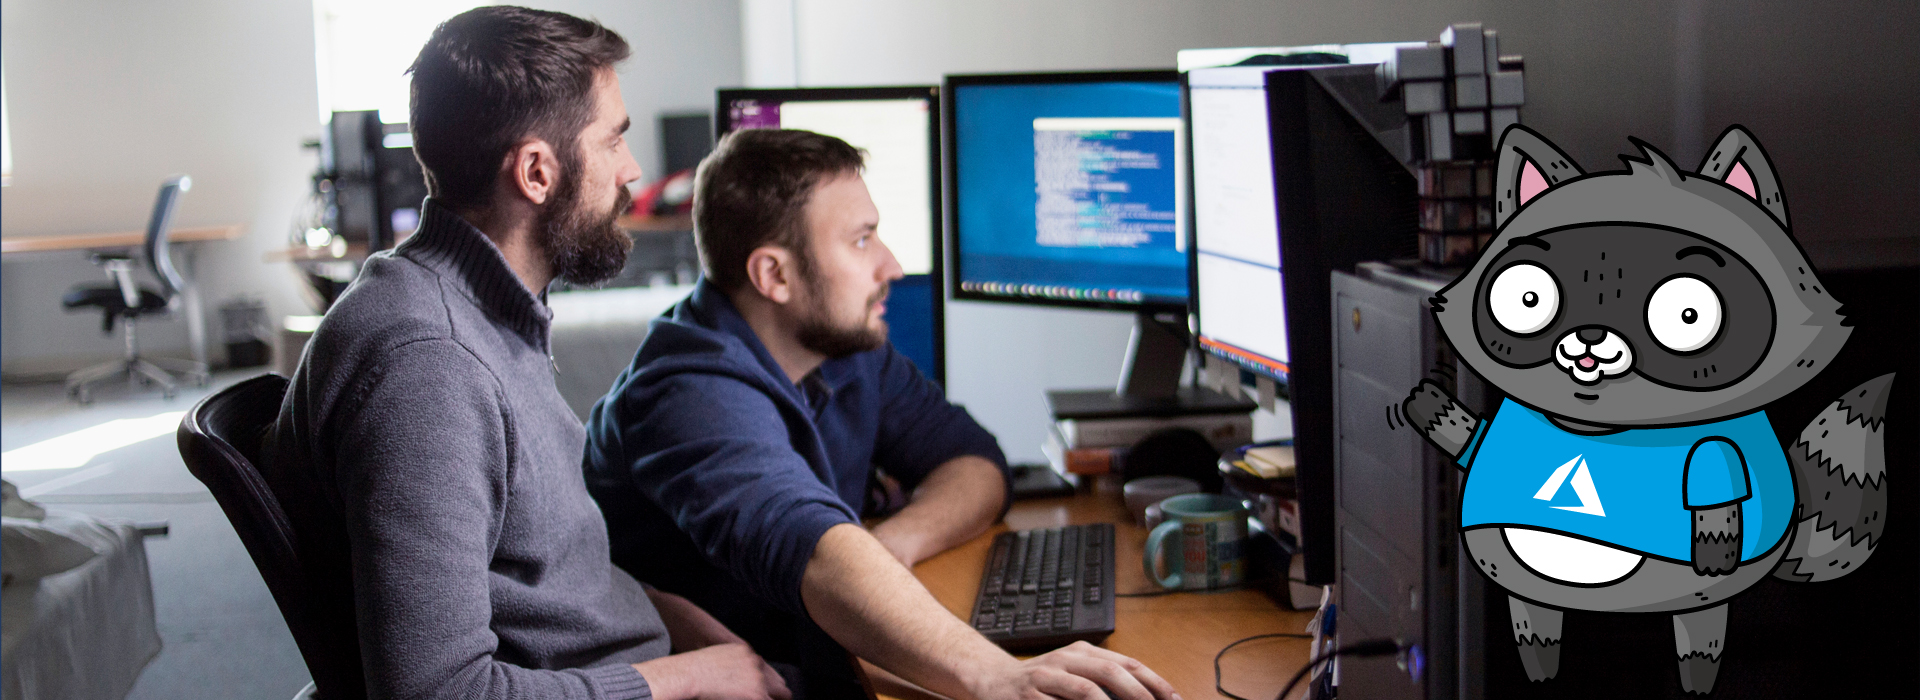 Two men working on a code project on a computer with multiple monitors. A picture of Bit the Raccoon is on the right of the image.